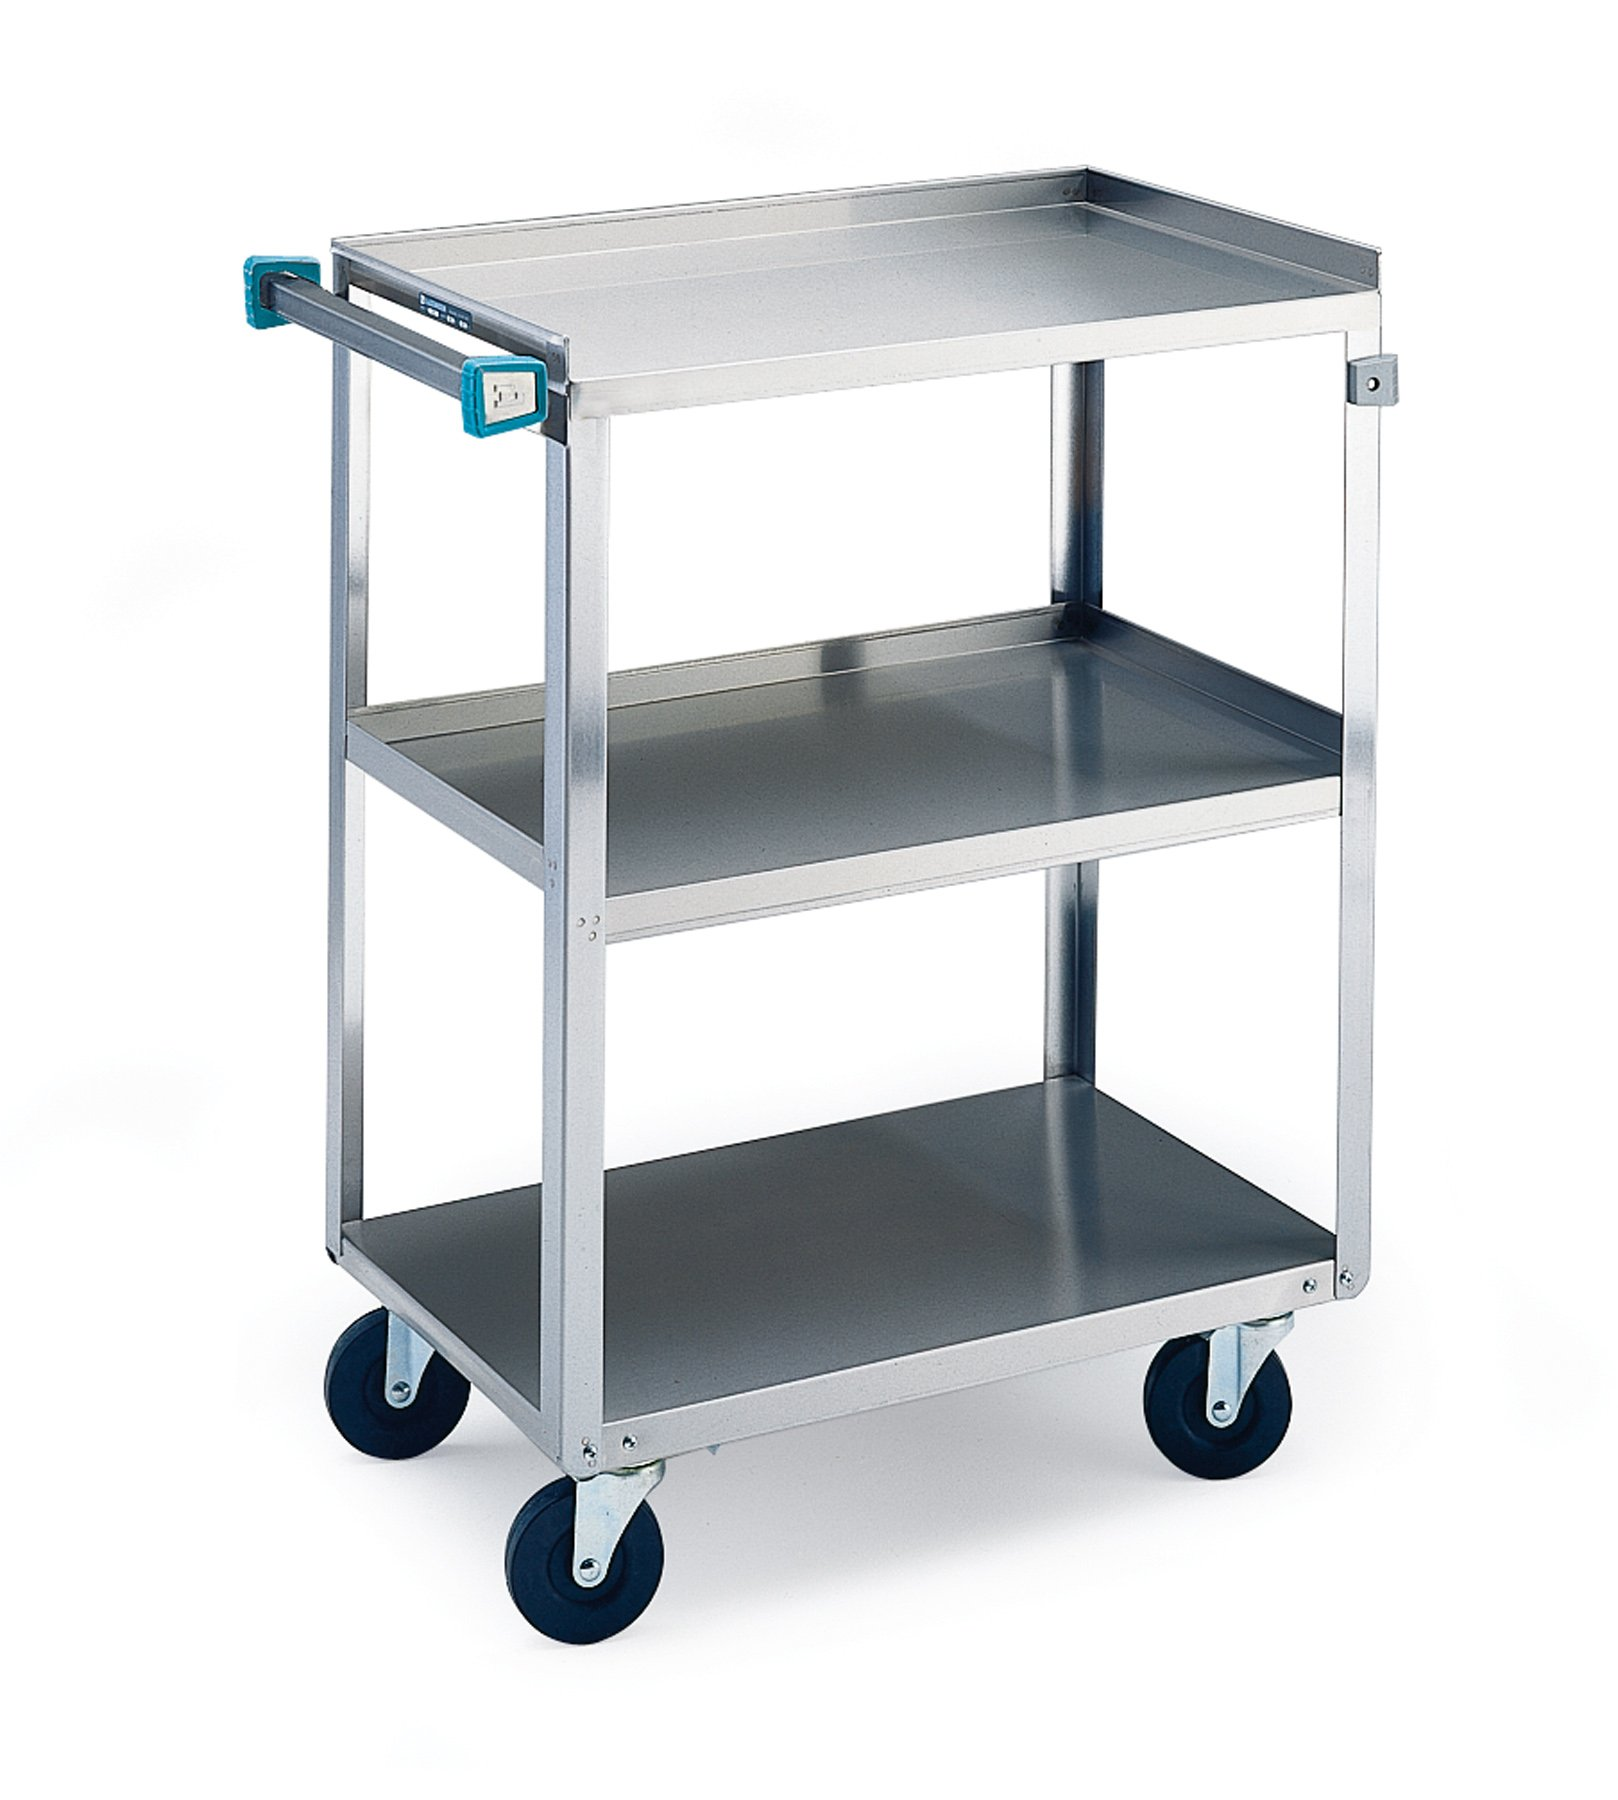 Lakeside 311 Traditional Duty Utility Cart, 3 Shelves, Stainless Steel, 300 lb Capacity, 16- 1/4'' x 27- 1/2'' x 32- 1/8''